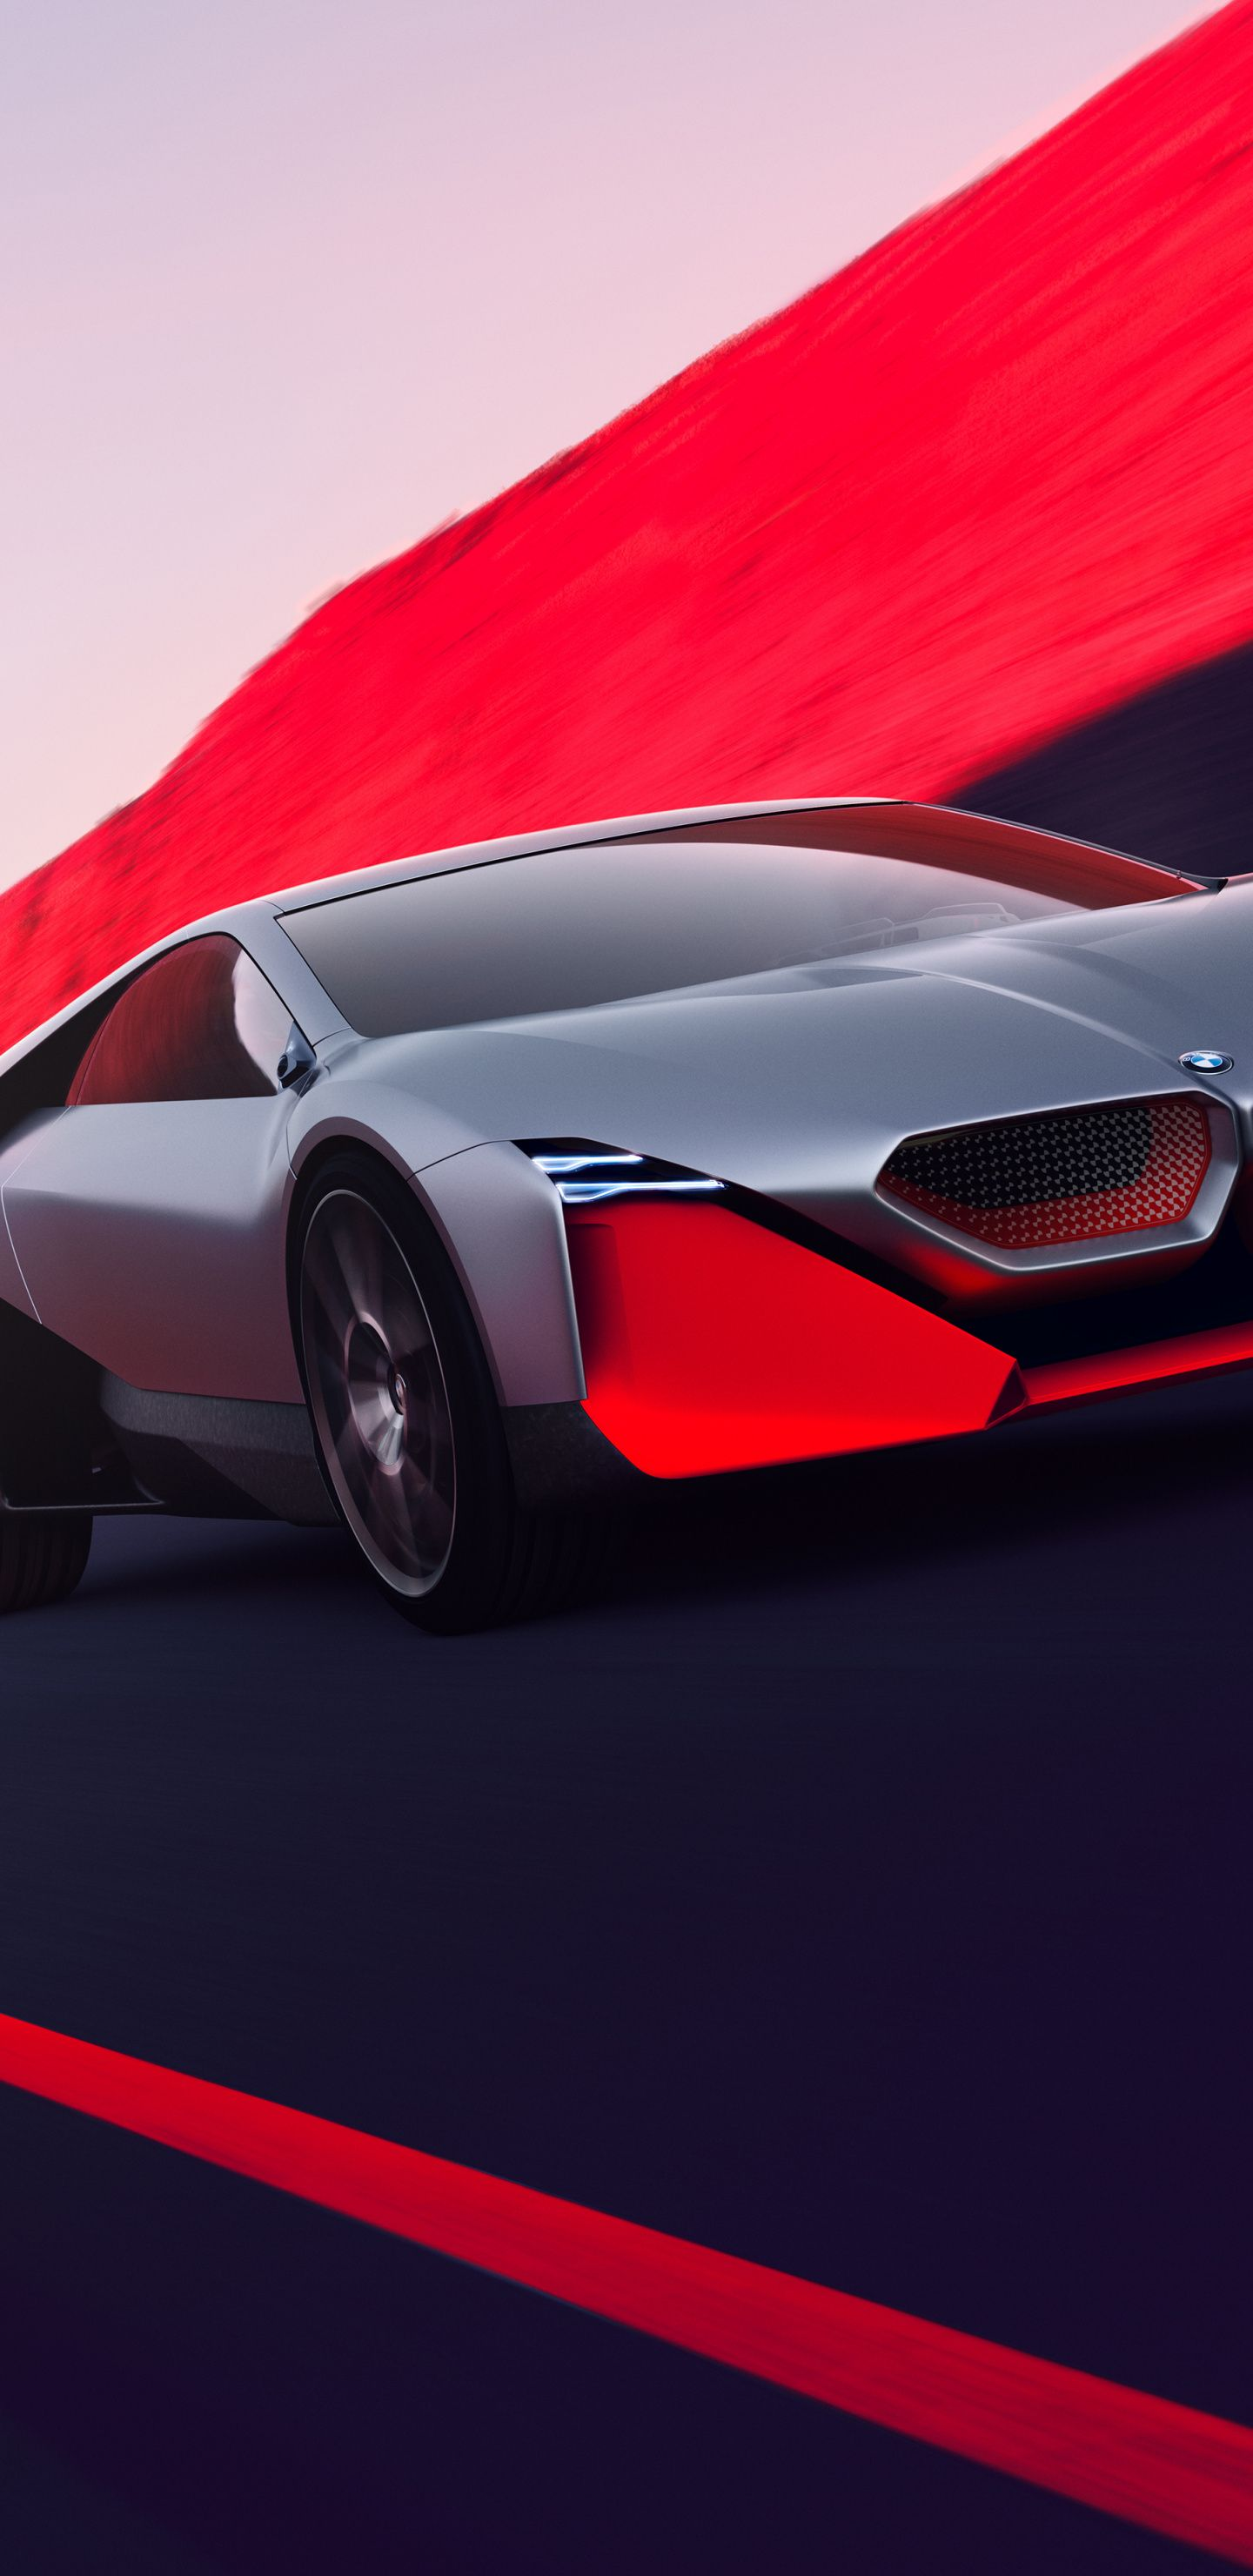 1440x2960 Bmw Vision M Next Concept Car Hybrid Sports Car Wallpaper Hybrid Sports Car Sports Car Wallpaper Car Wallpapers